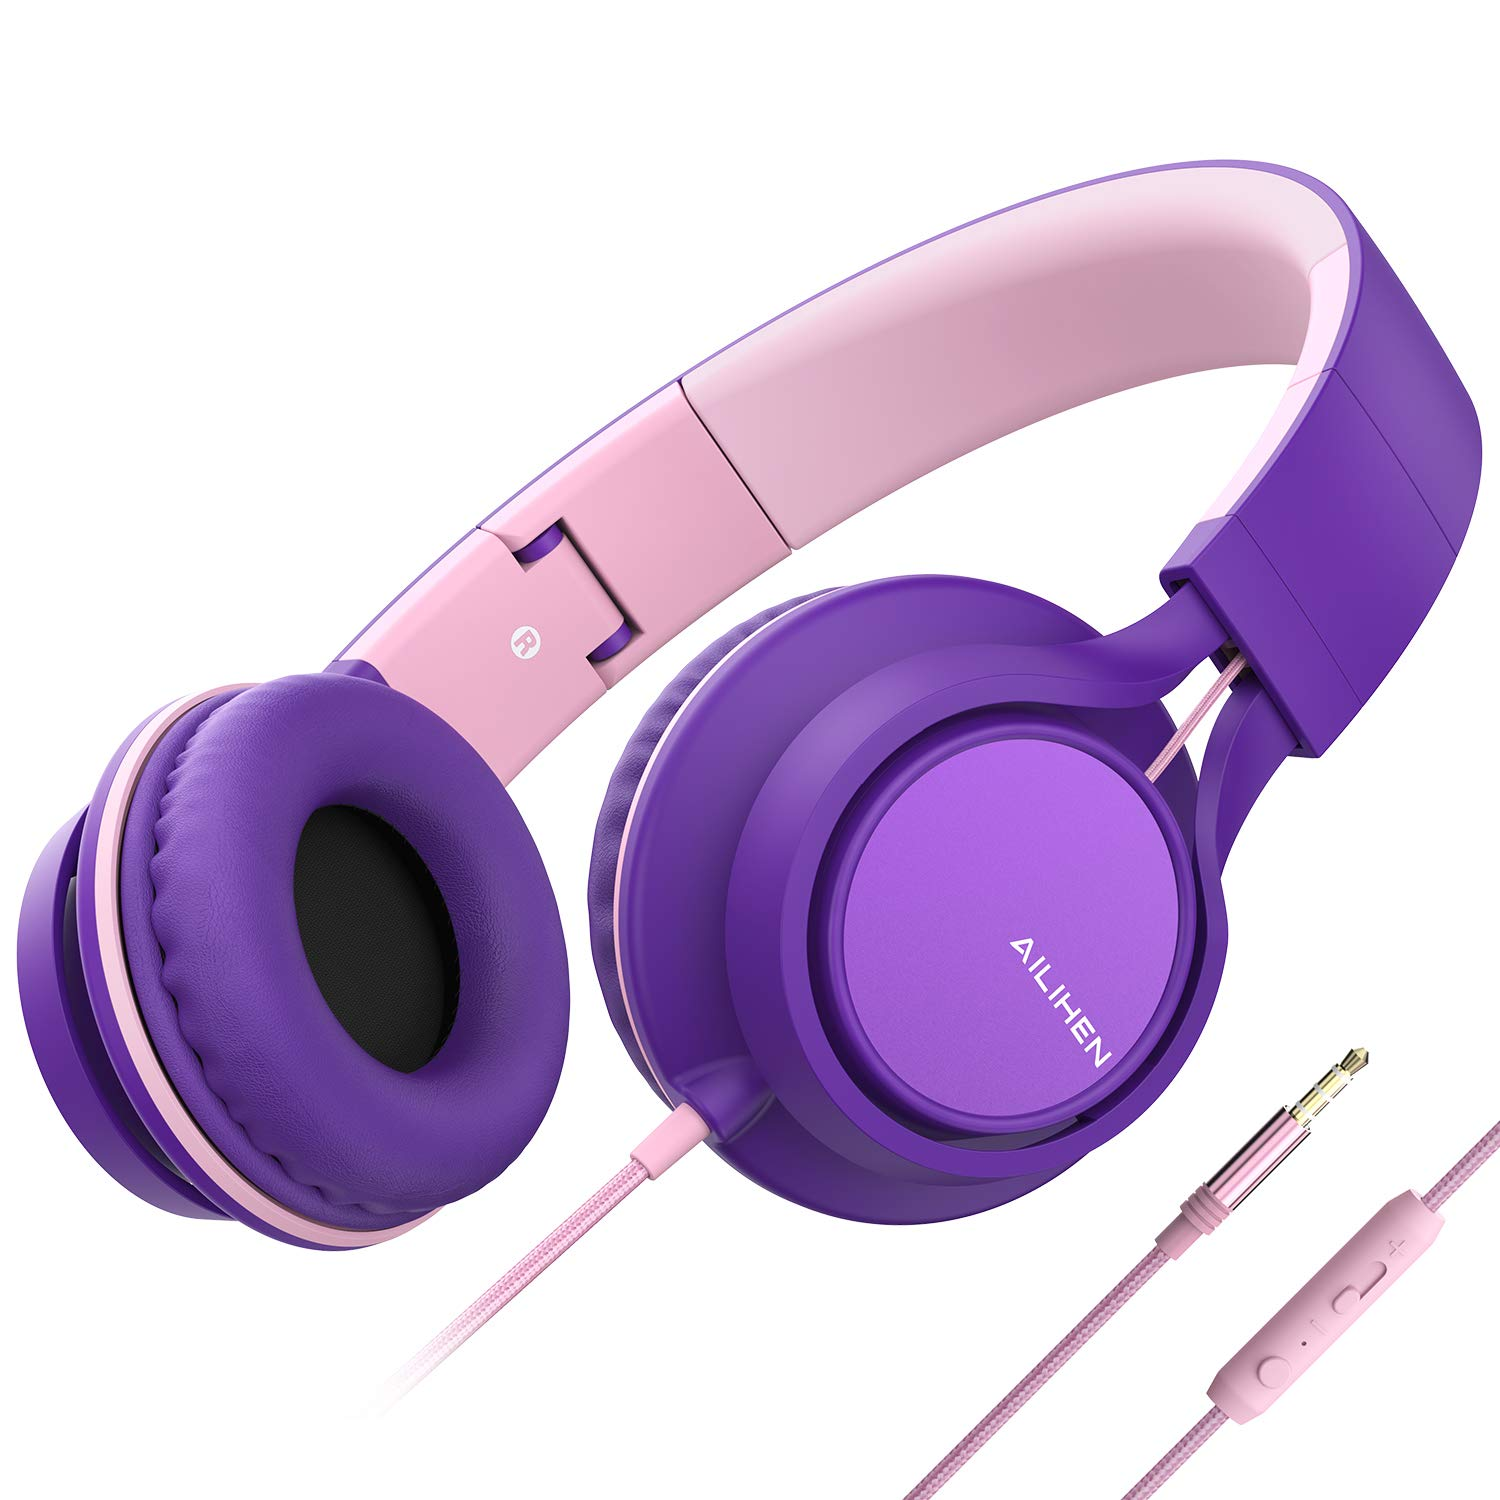 AILIHEN C8 Headphones with Microphone and Volume Control Folding Lightweight Headset for Cellphones Tablets Smartphones Laptop Computer PC Mp3/4 (Purple Pink)